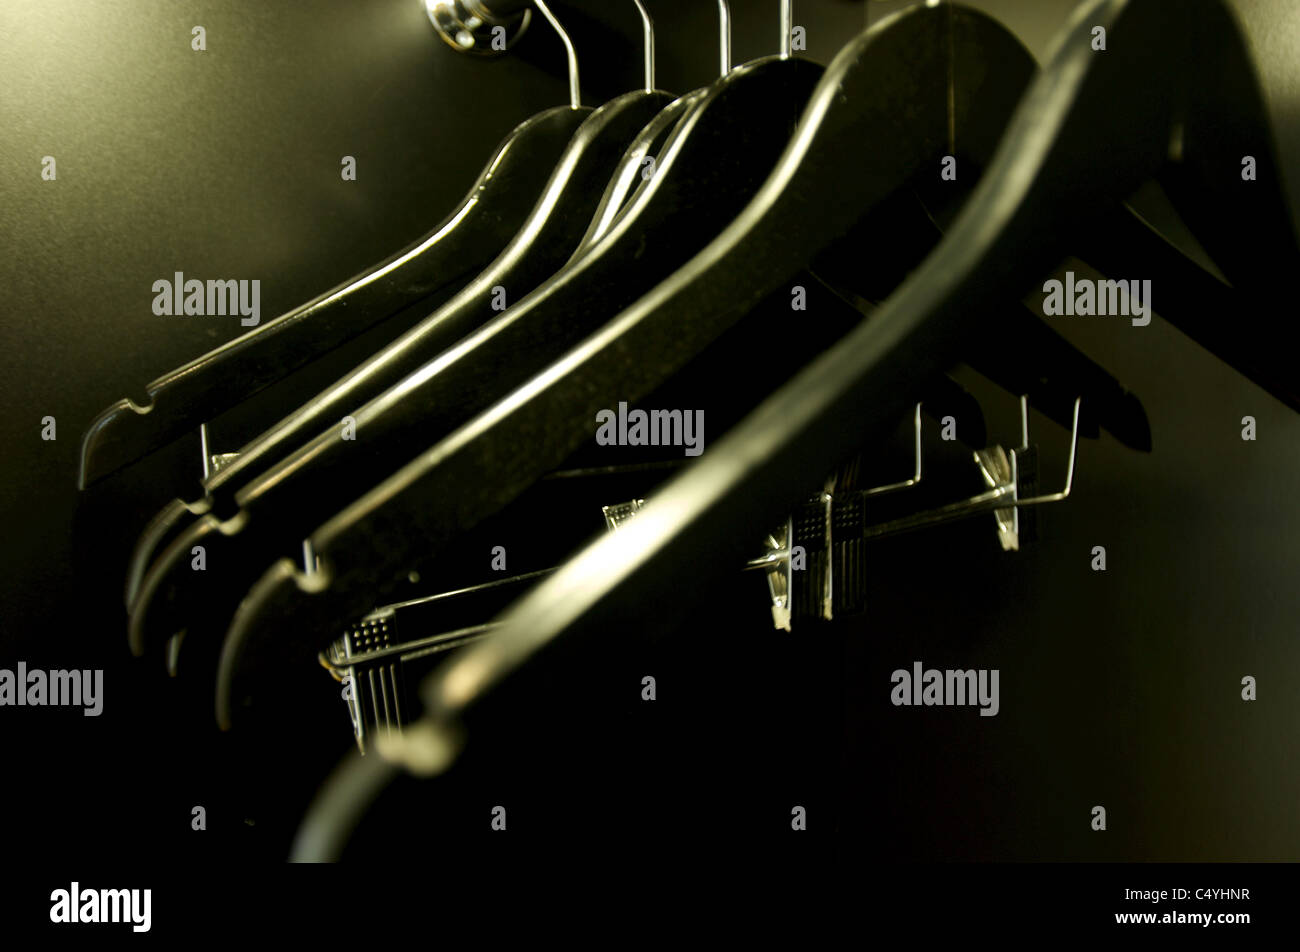 A group of empty black clothing hangers in a closet. - Stock Image